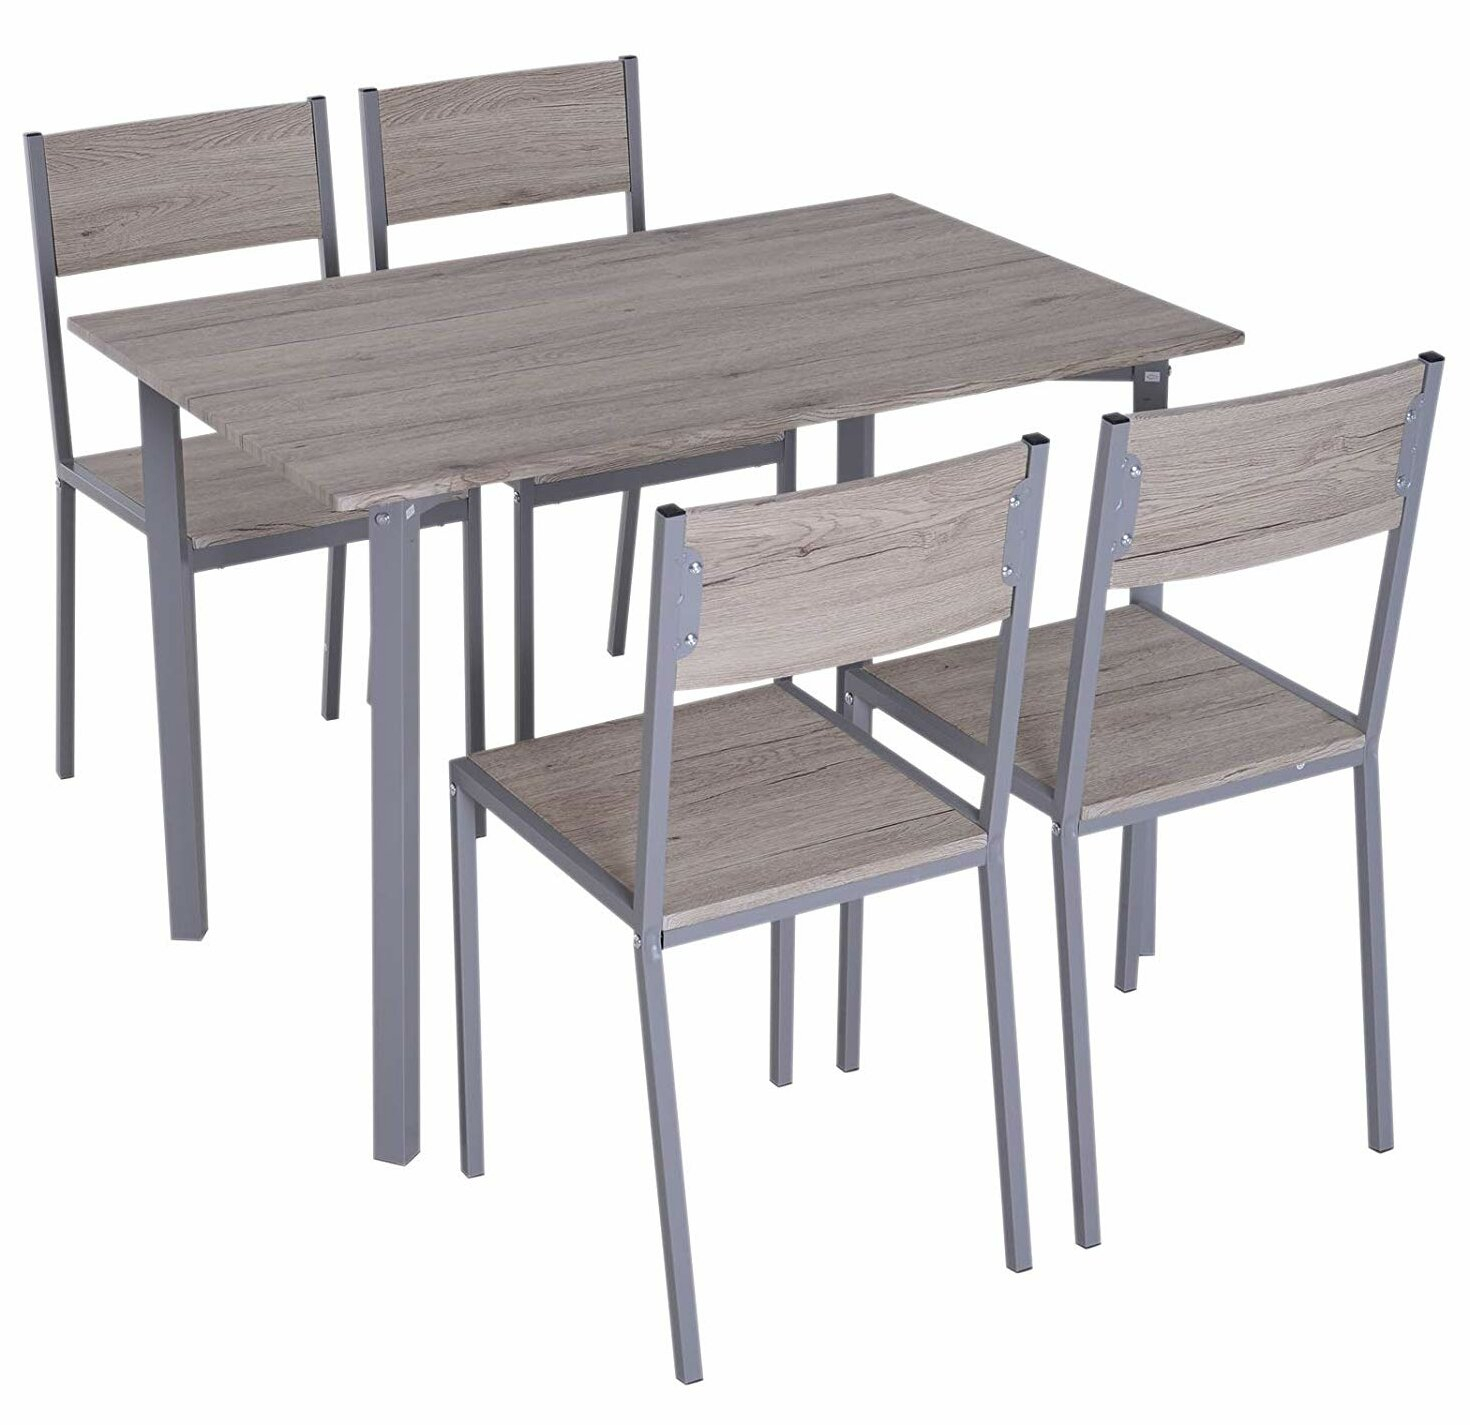 Legros Modern Compact 5 Piece Dining Set Inside Best And Newest Maloney 3 Piece Breakfast Nook Dining Sets (Image 8 of 20)